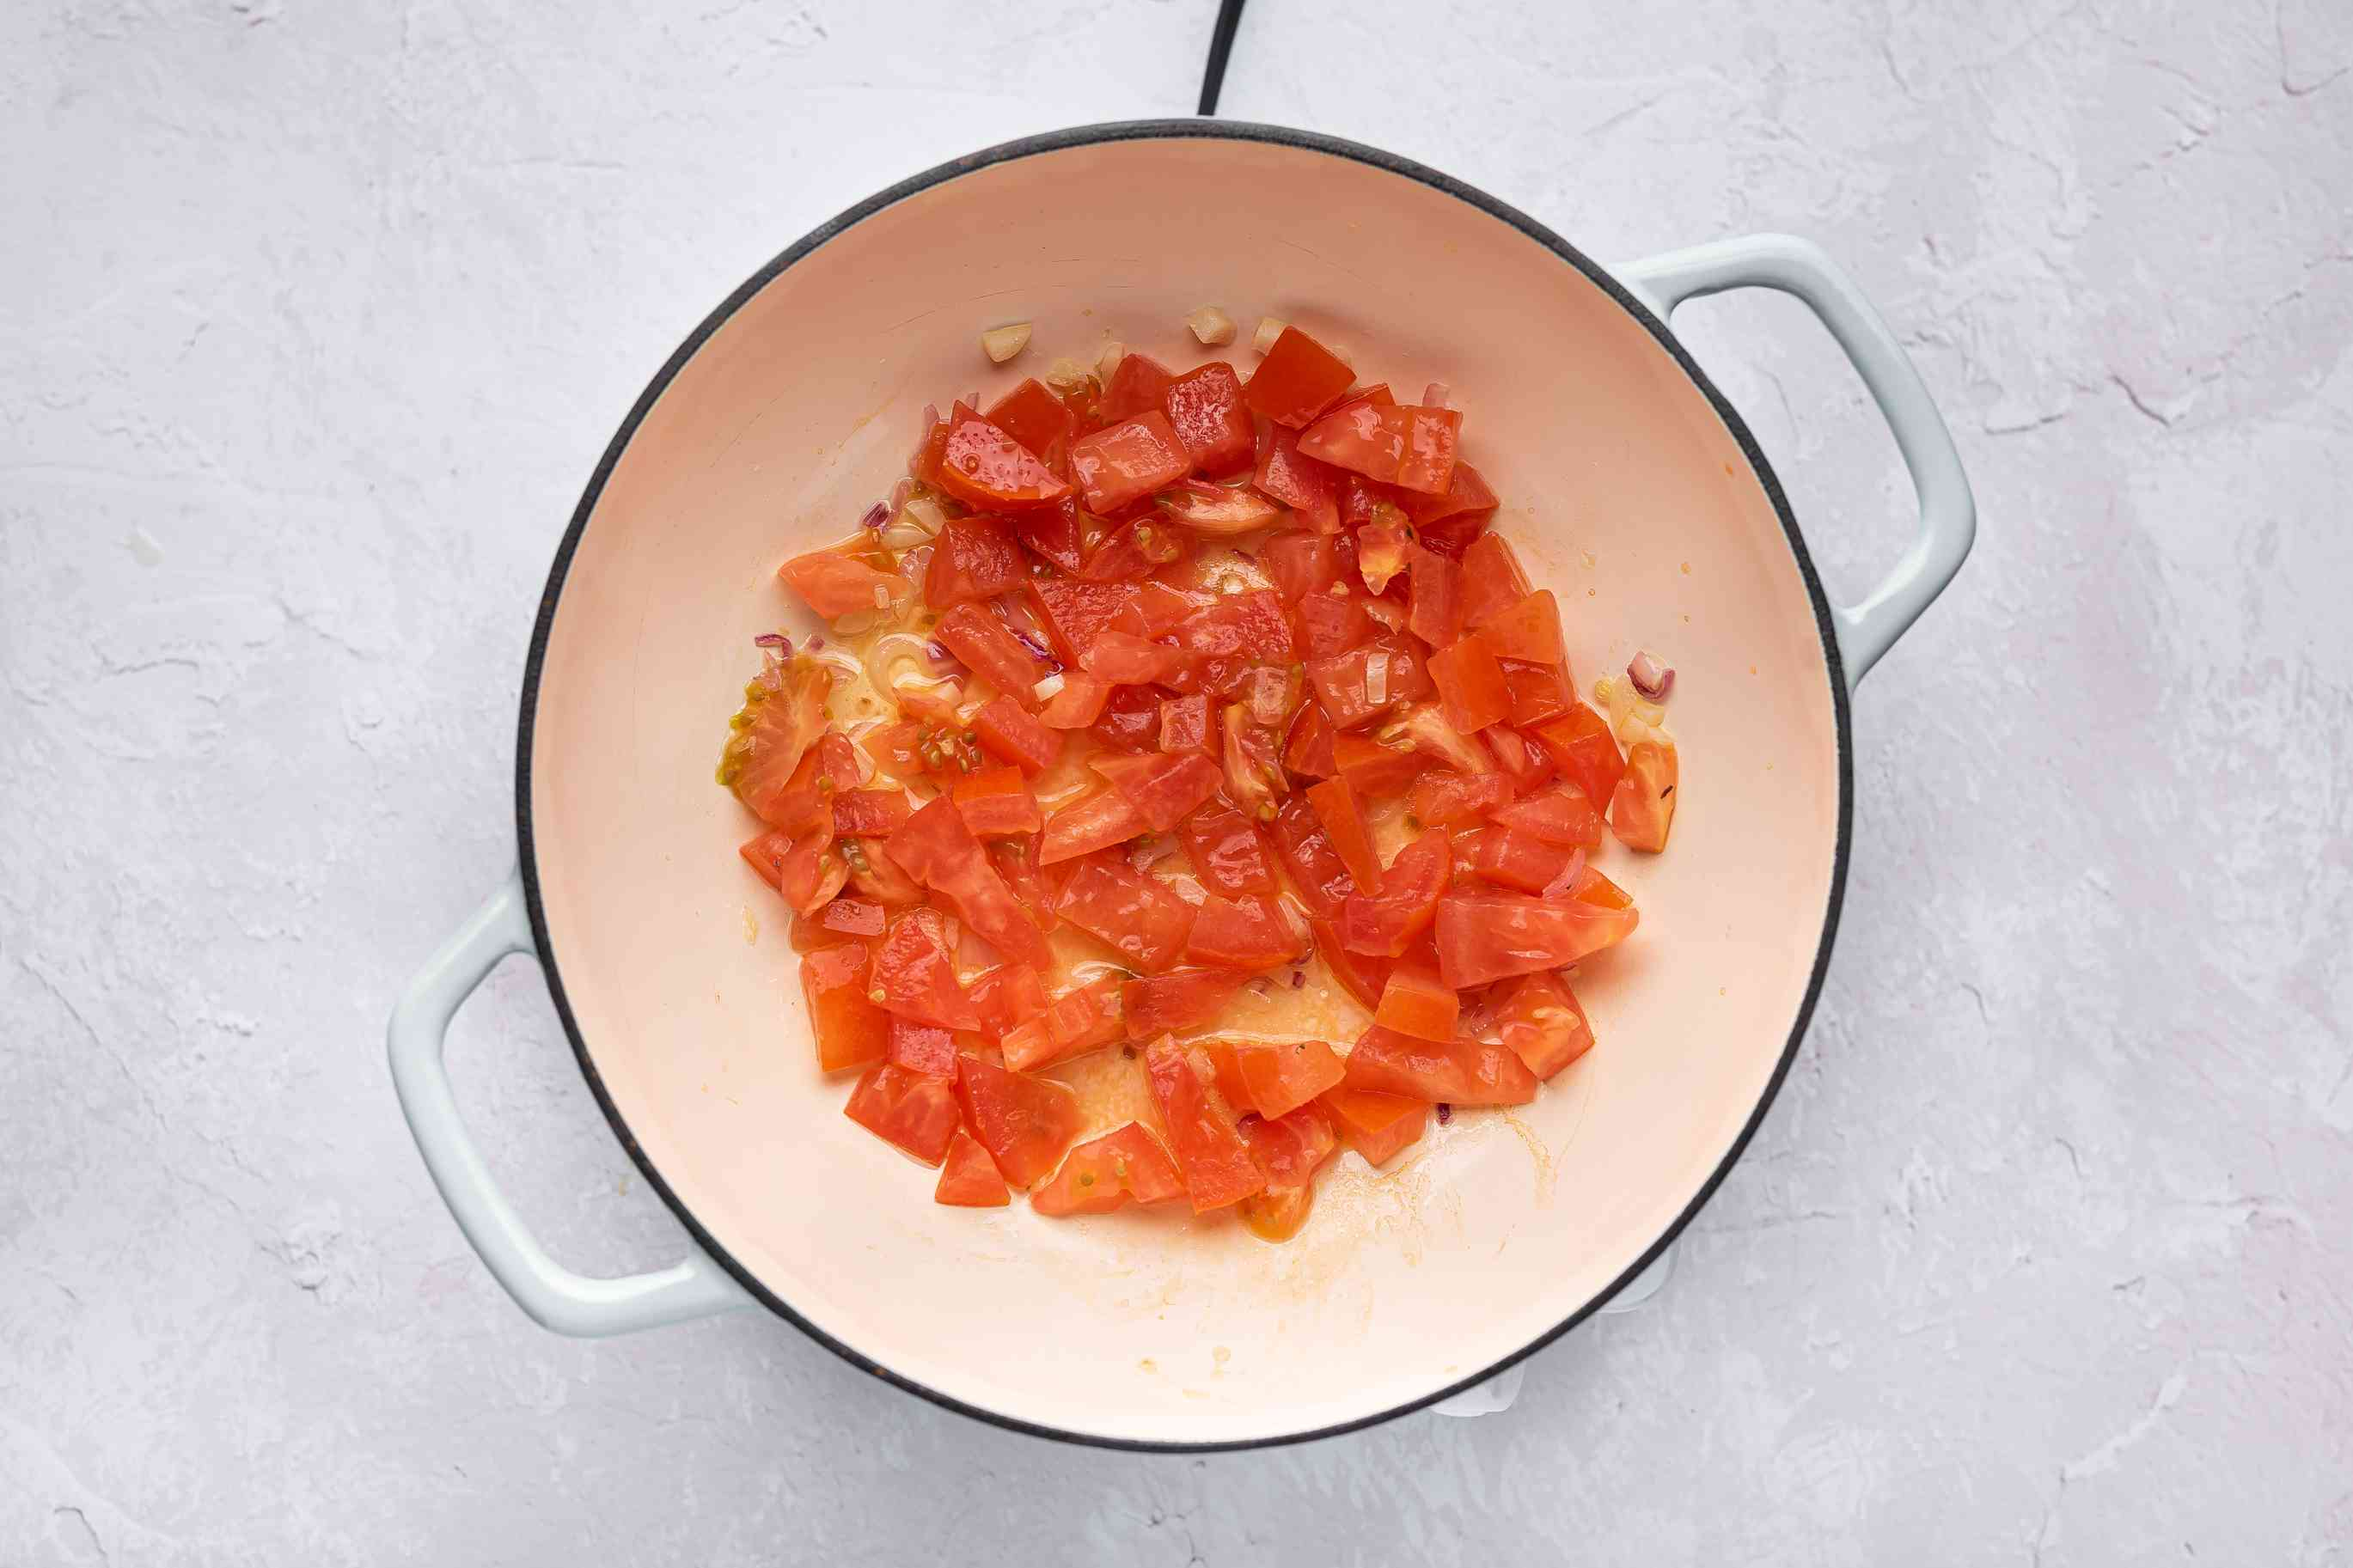 Saute the minced garlic, sliced shallots and diced tomato in a pot